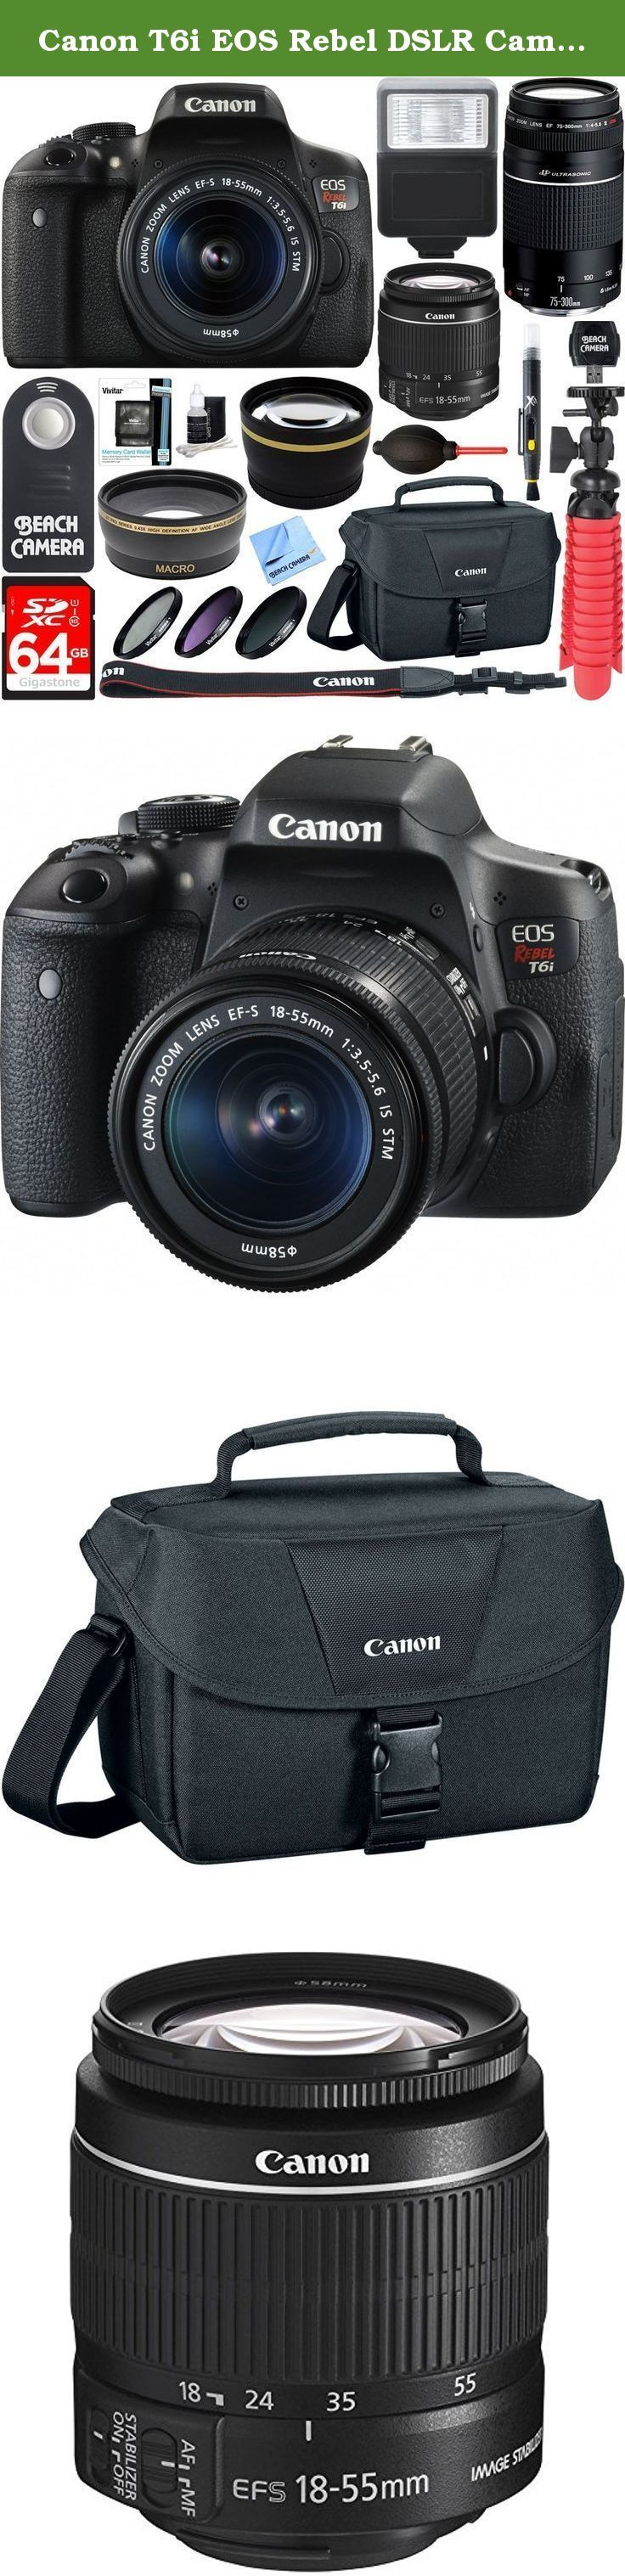 Canon T6i EOS Rebel DSLR Camera w/ EF-S 18-55mm & 75-300mm IS II Lens Kit + Accessory Bundle 64GB SDXC Memory + SLR Photo Bag + Wide Angle Lens + 2x Telephoto Lens + Flash + Remote + Tripod & More. 24.2 Megapixel CMOS Sensor EOS Full HD Movie Built-in Wi-Fi & NFC Authorized Canon Dealer USA Warranty Wireless Takes EOS Rebel to The Next Level For gorgeous, high-quality photos and videos that are easy to share, look to the Canon EOS Rebel T6i camera. The EOS Rebel T6i does more, easier...